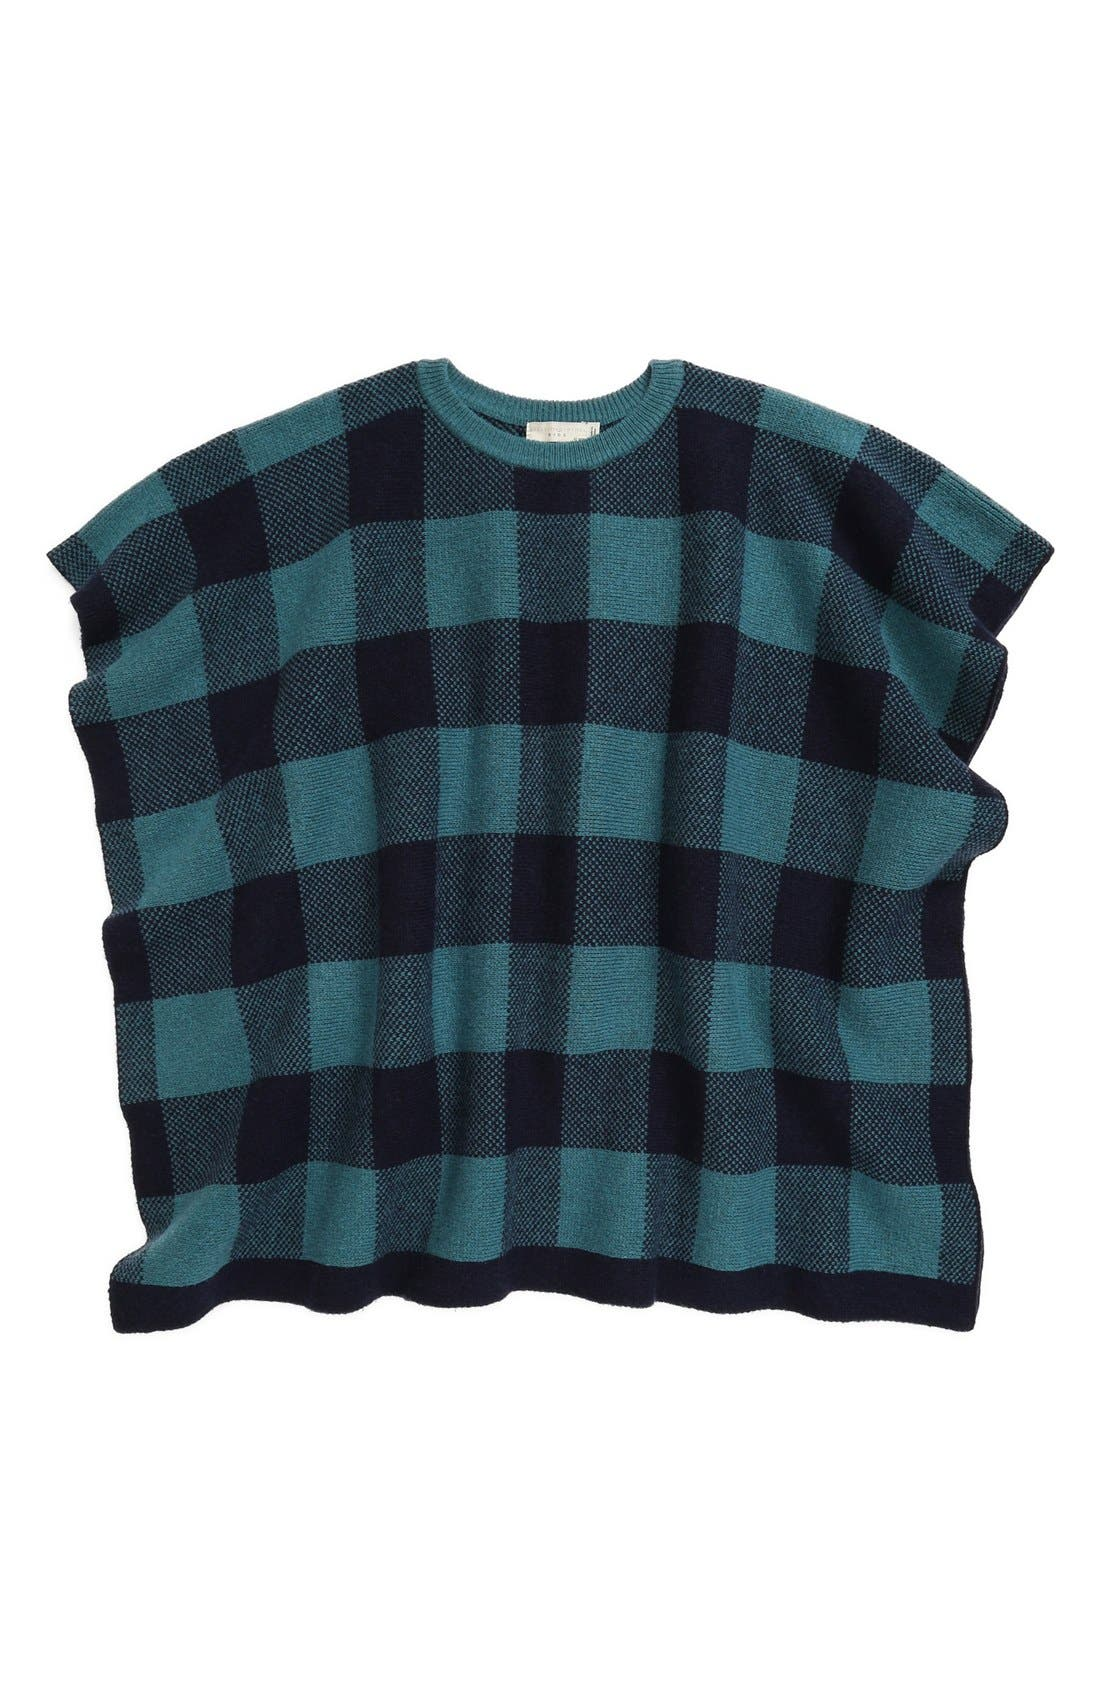 Alternate Image 1 Selected - Stella McCartney Kids 'Agnes' Check Poncho (Toddler, Little Girls & Big Girls)